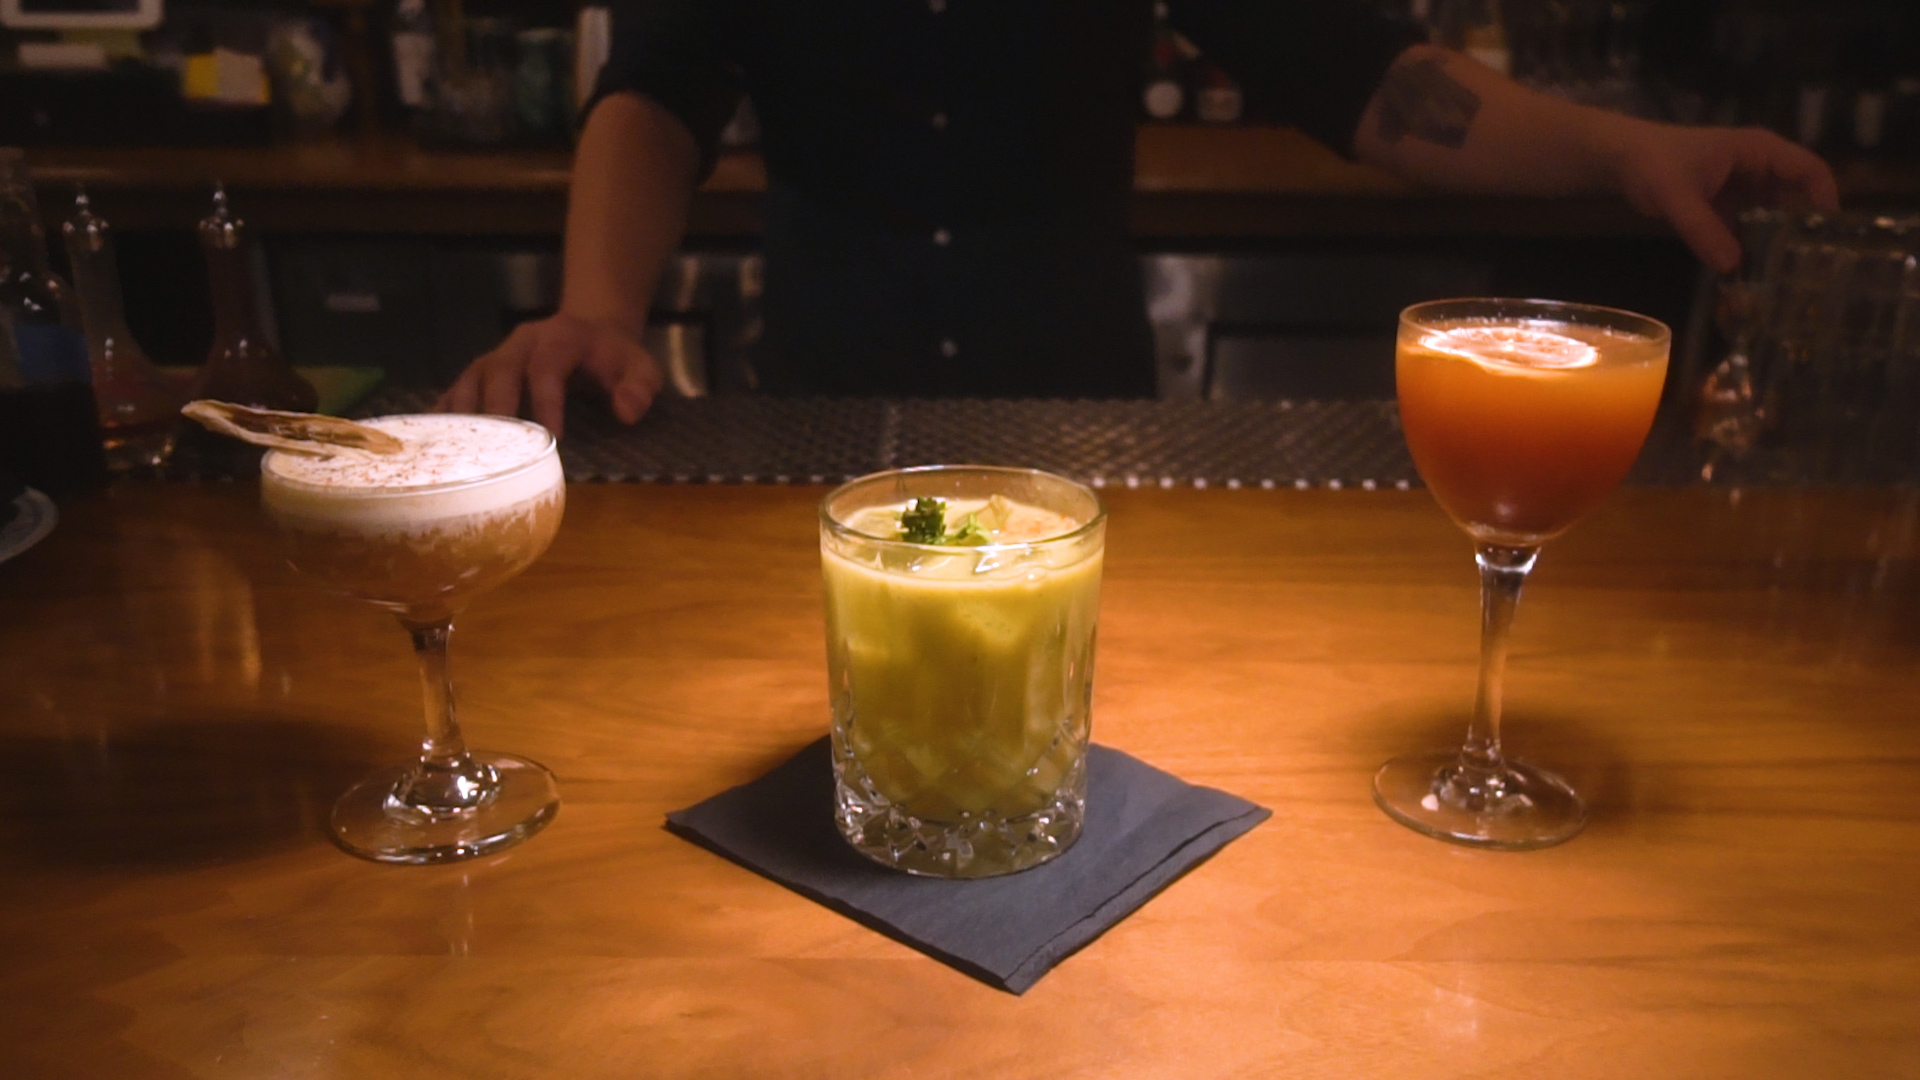 Delicious, Chunky Sips: We Tried Cocktails Made with Fat